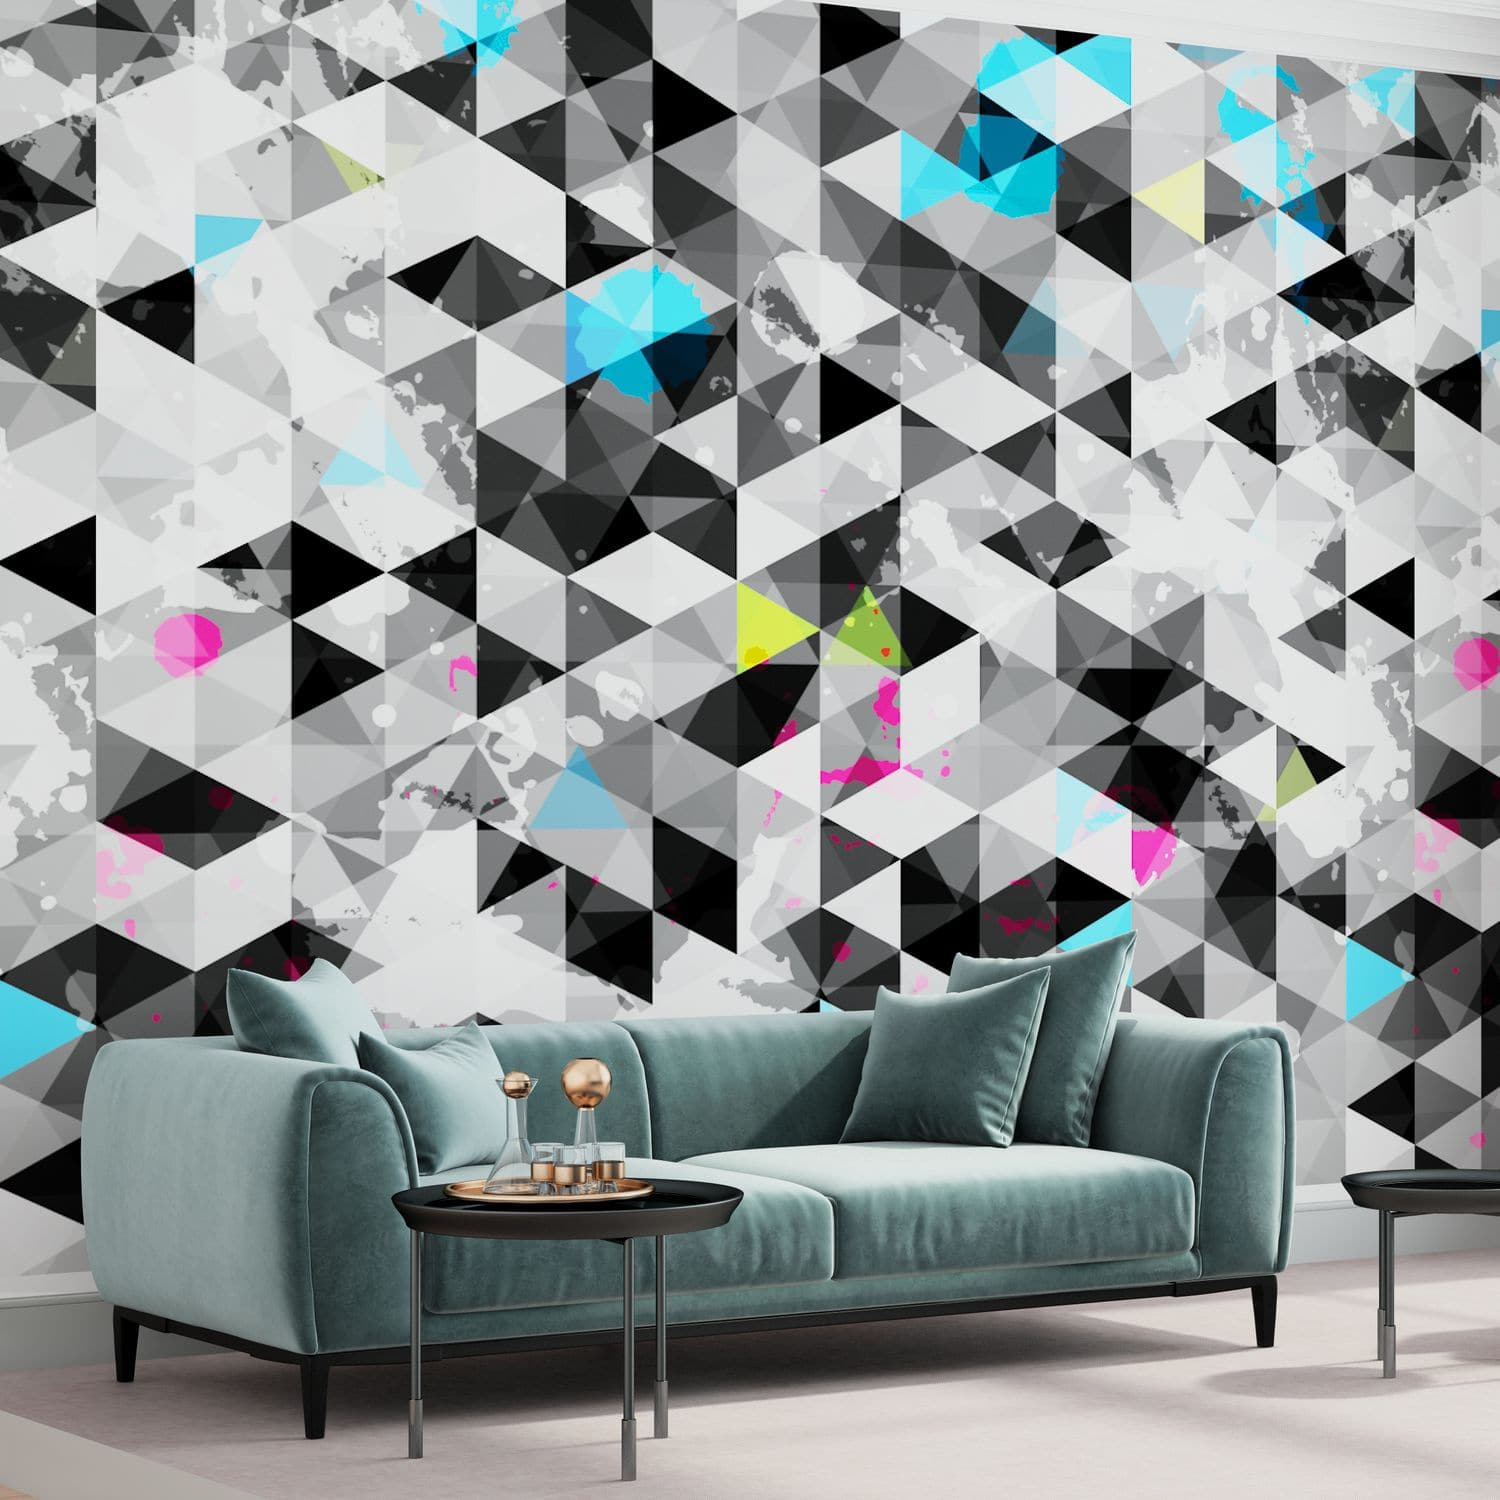 Contemporary Wallpaper Nonwoven Fabric Vinyl Patterned